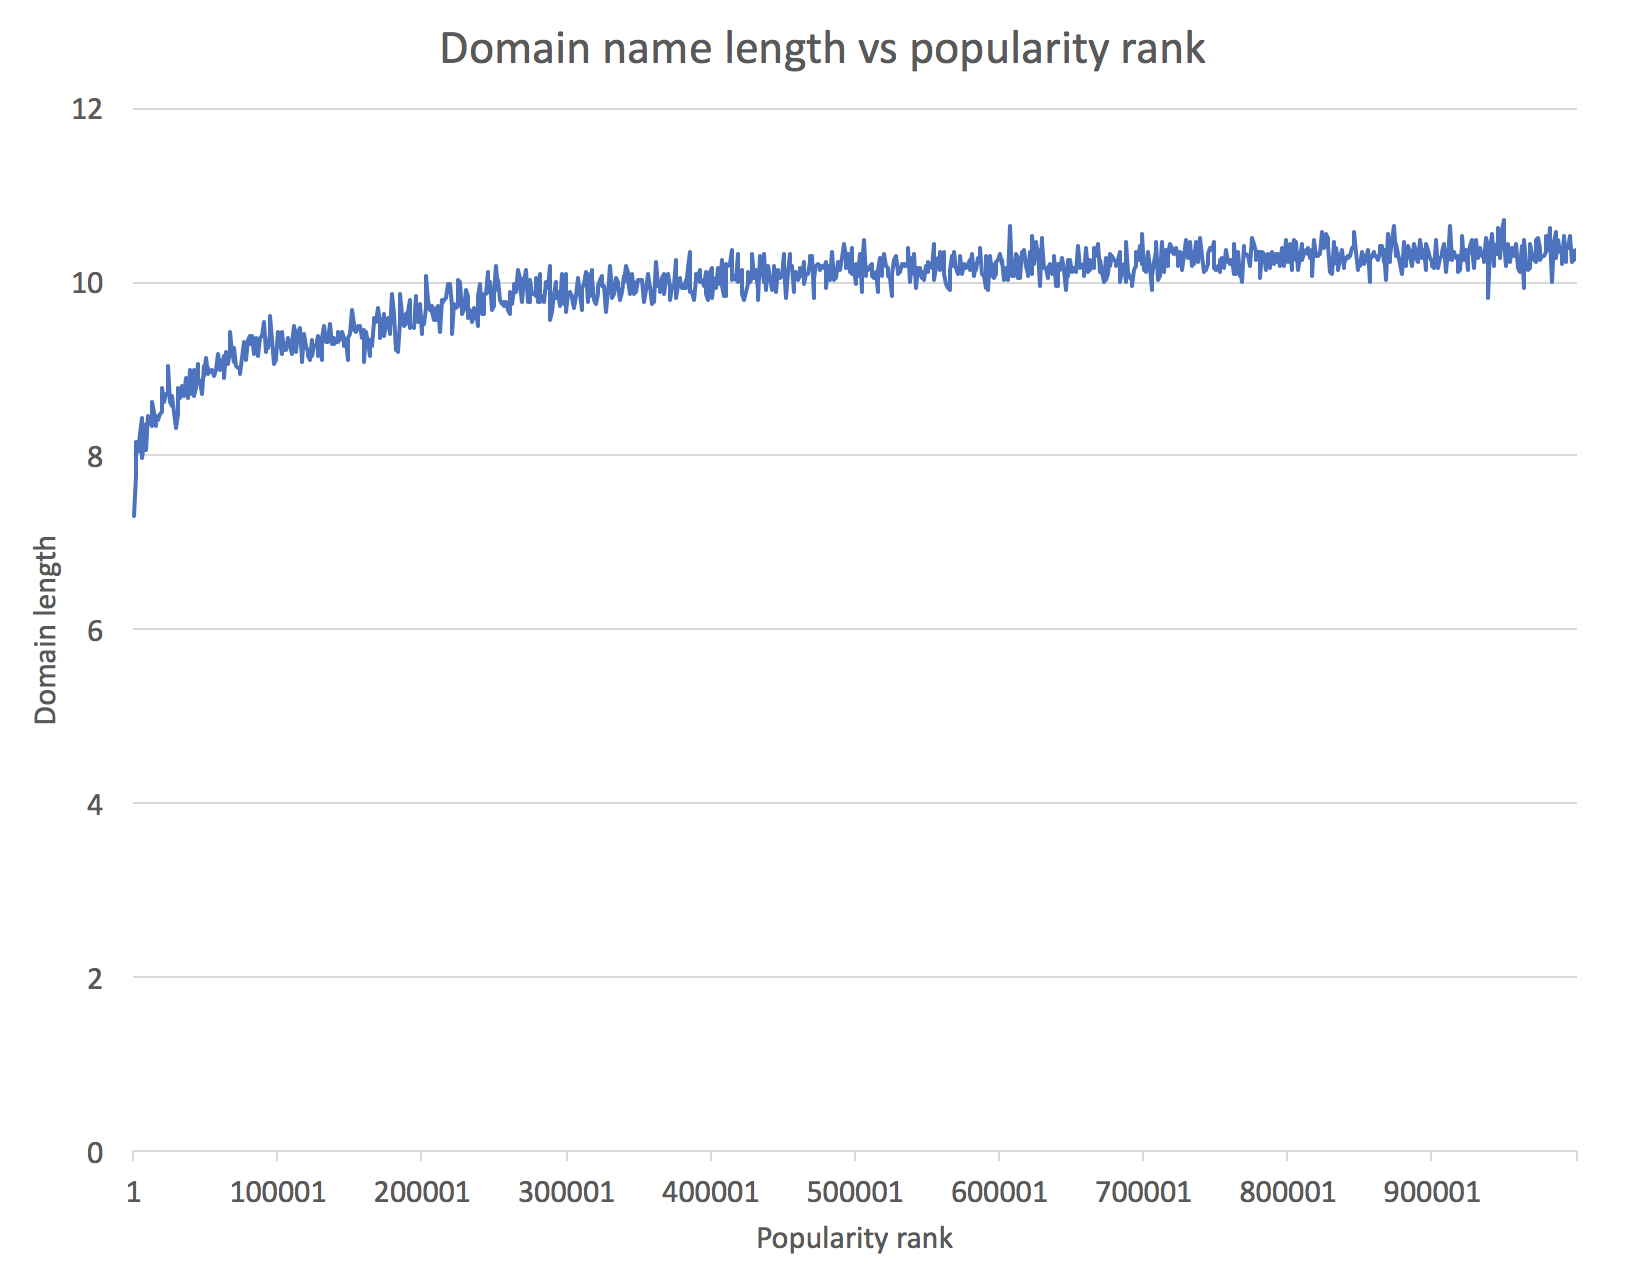 Domain name length vs popularity